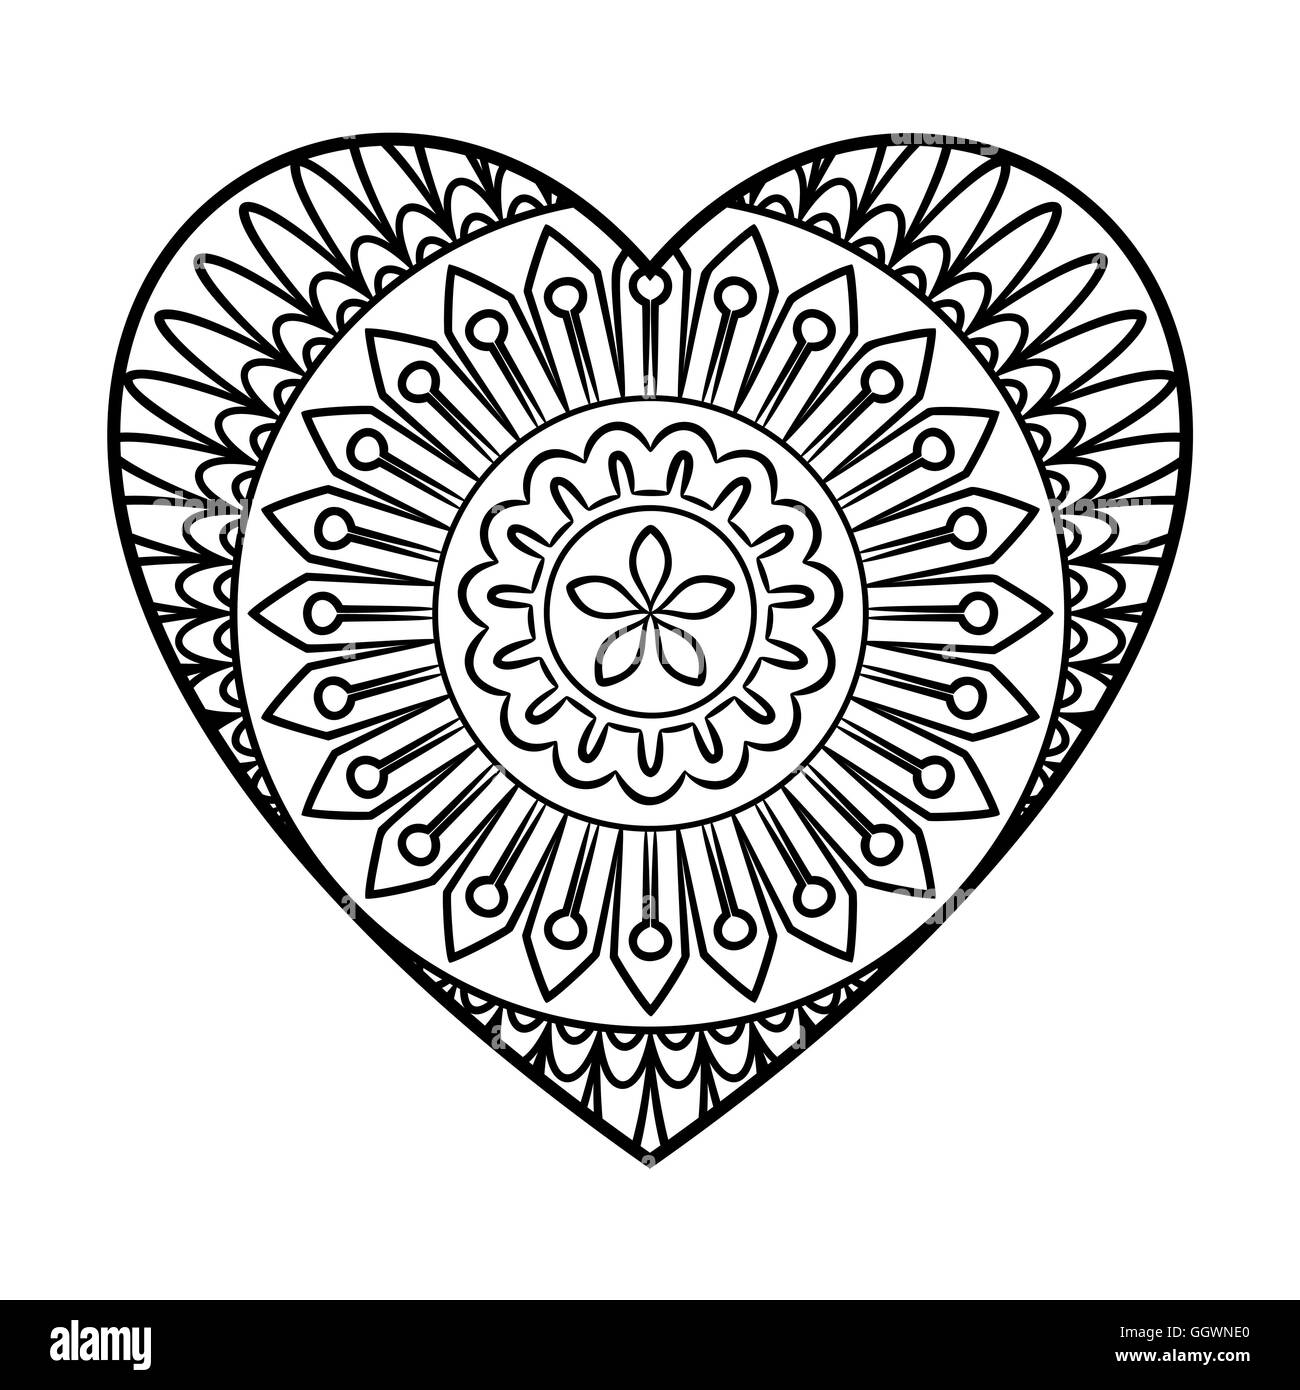 Doodle Heart Mandala Stock Vector Art Amp Illustration